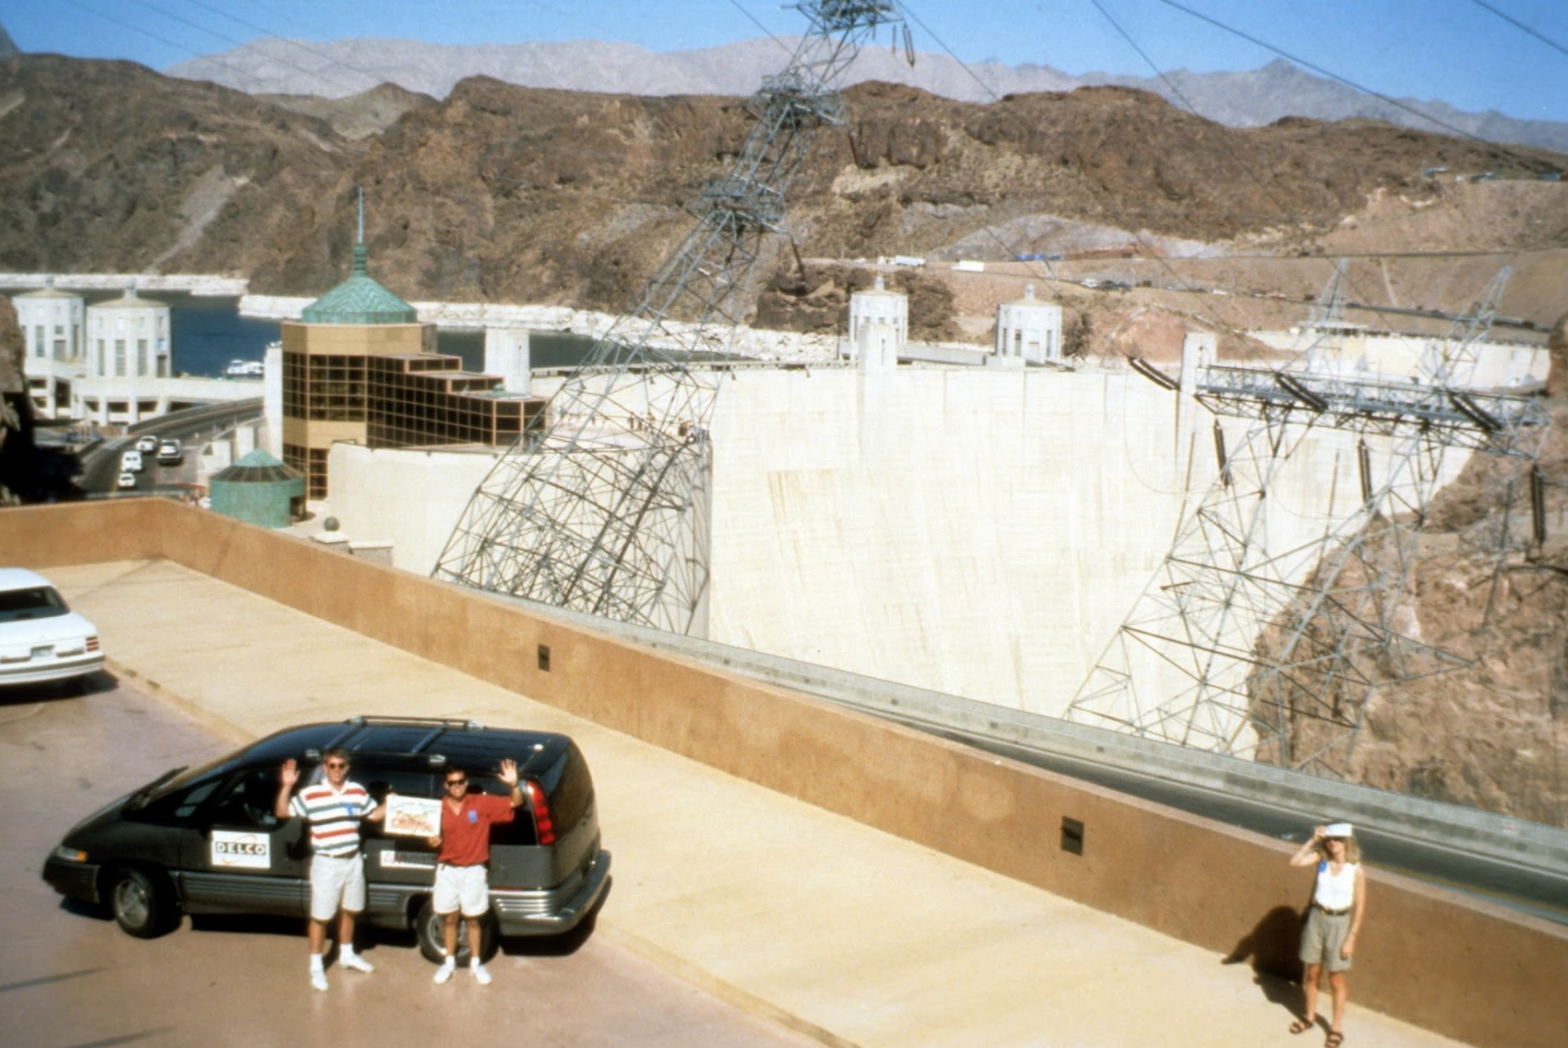 ralph becomes the first autonomous vehicle to cross the hoover dam. image credit: Todd Jochem